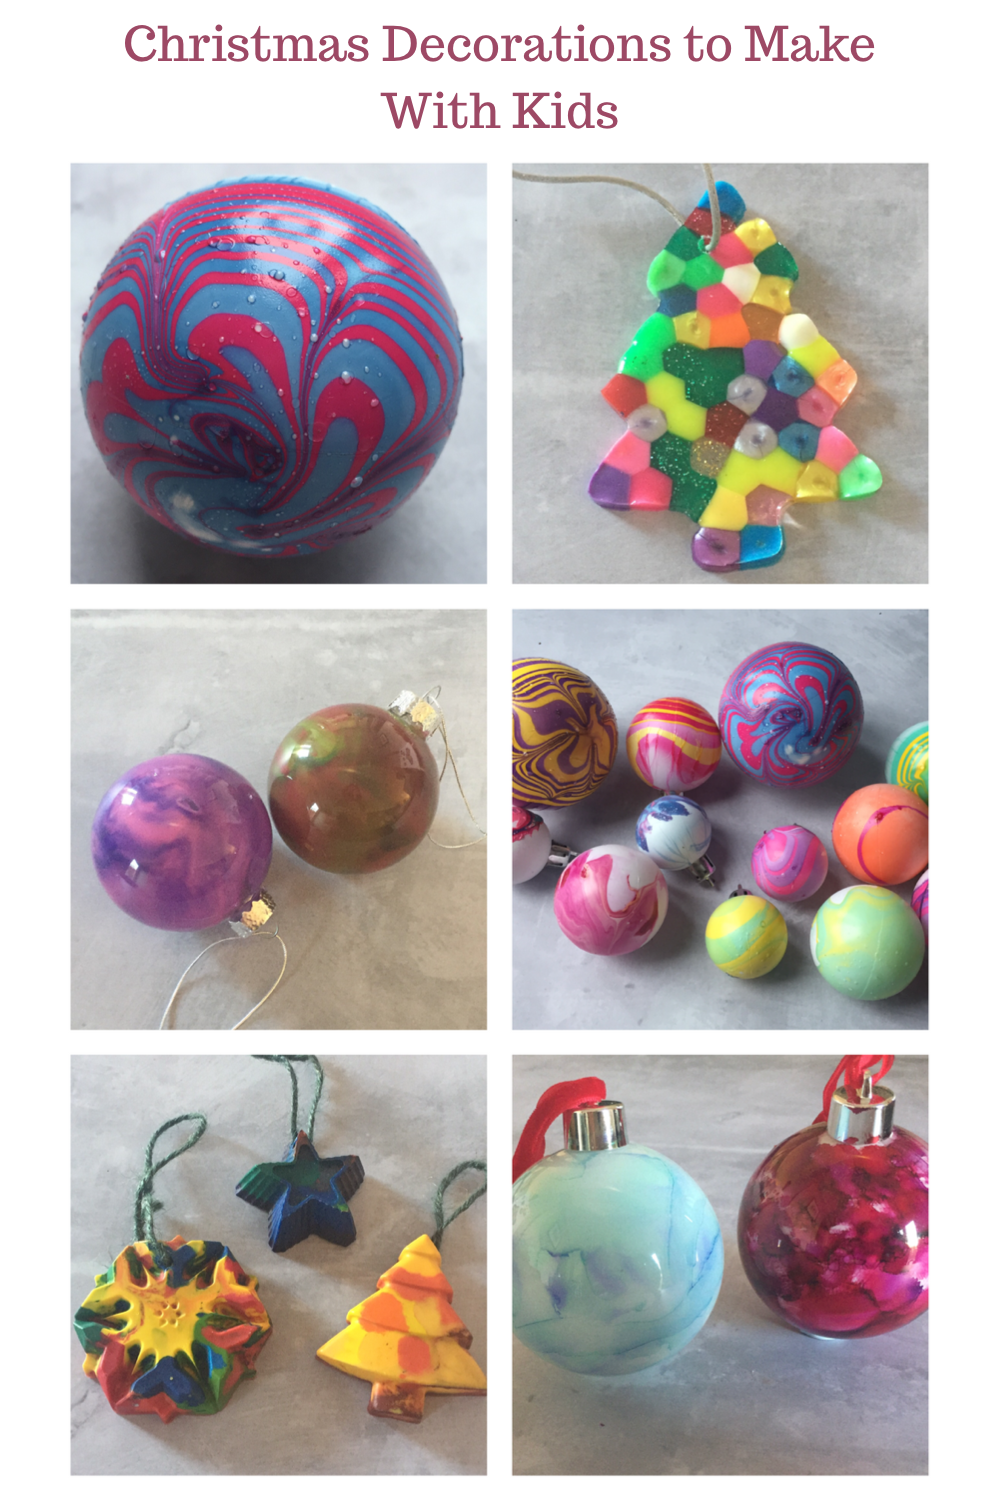 Christmas decorations to make with kids